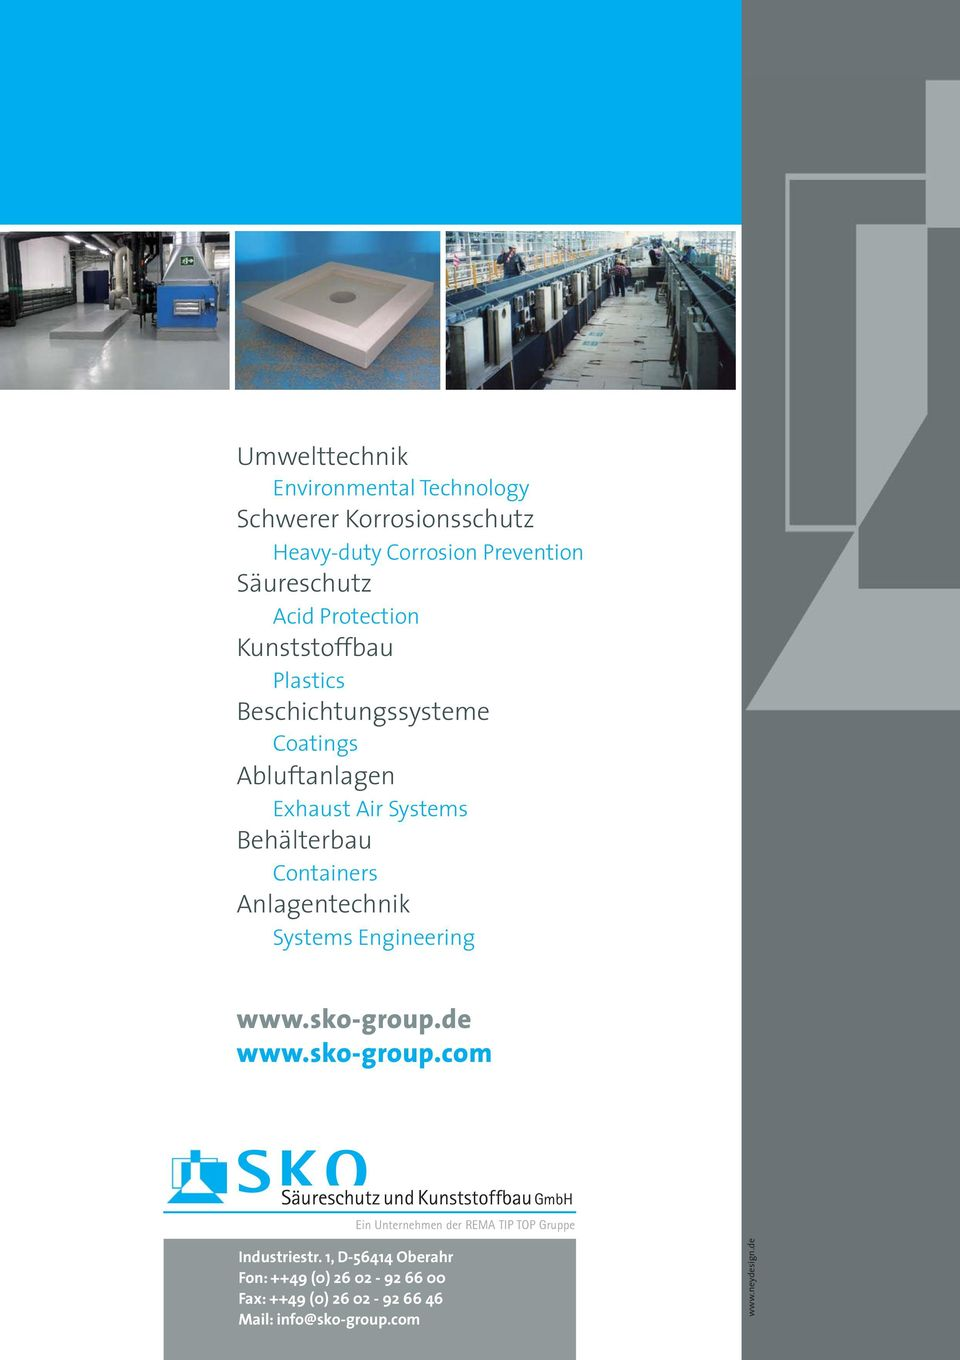 Systems Engineering www.sko-group.de www.sko-group.com Säureschutz und Kunststoffbau GmbH Ein Unternehmen der REMA TIP TOP Gruppe Industriestr.